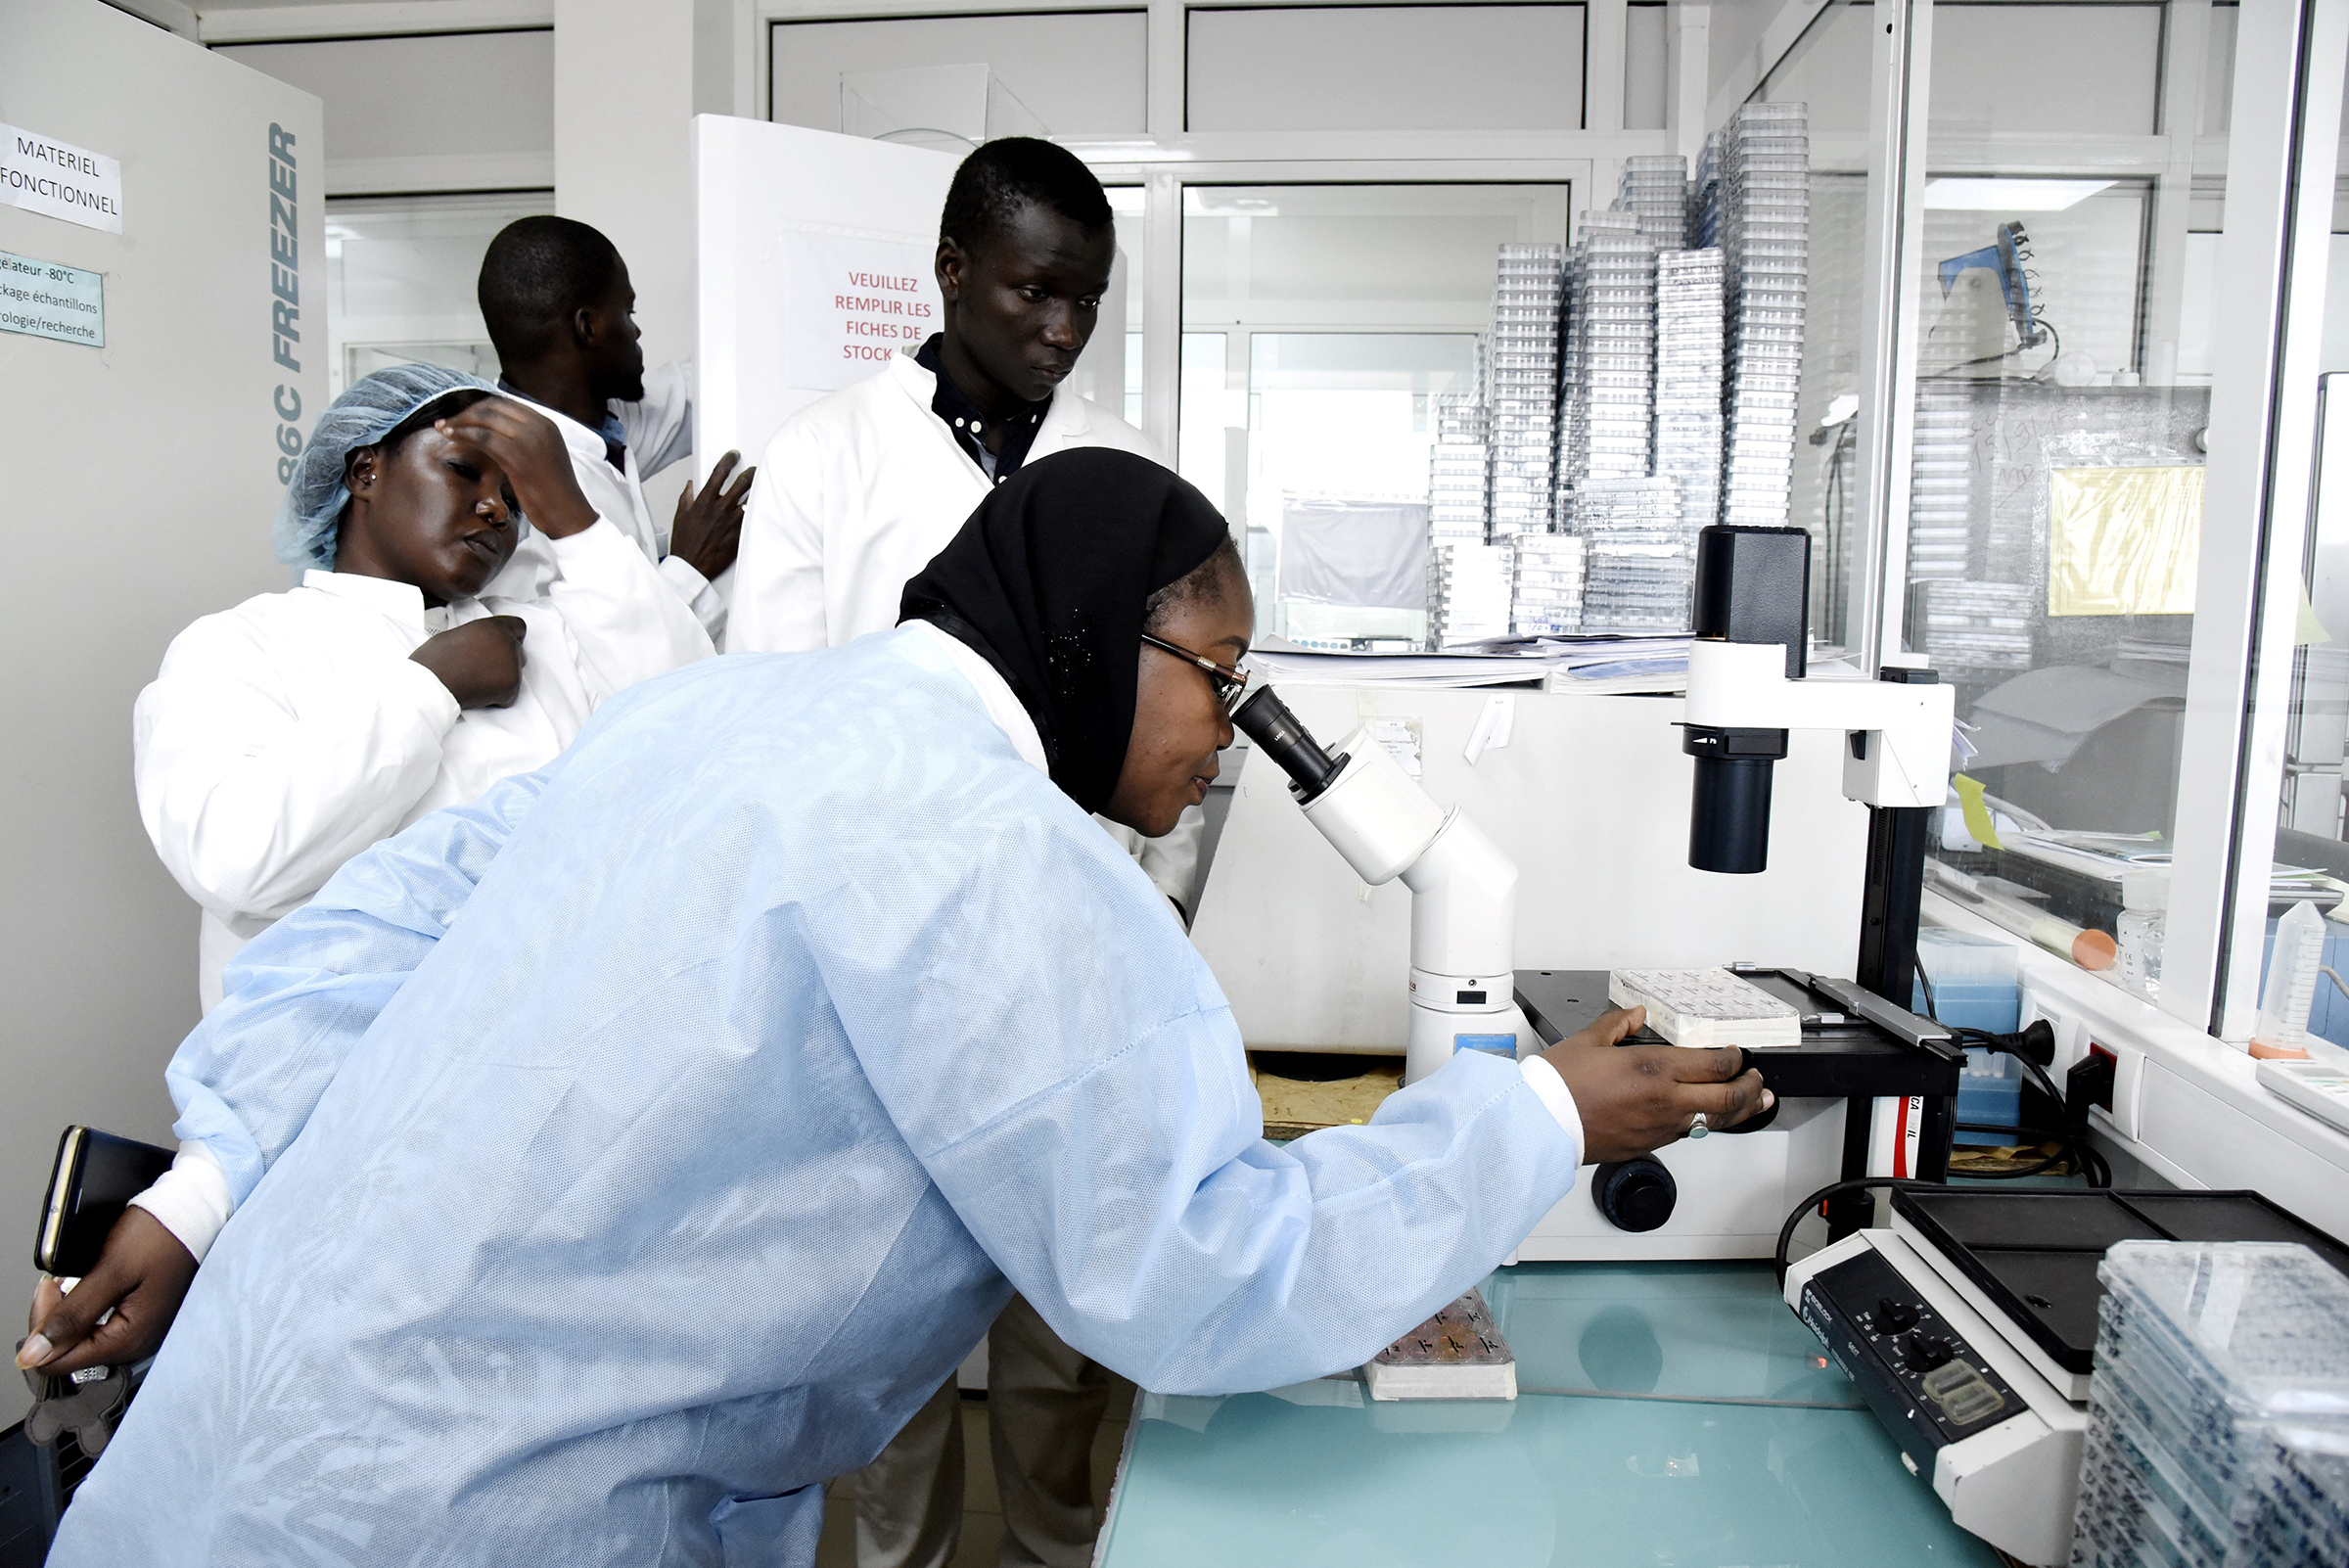 Scientific staff members work in a secure laboratory, researching the coronavirus, at the Pasteur Institute in Dakar, Senegal, on Feb. 3, 2020.